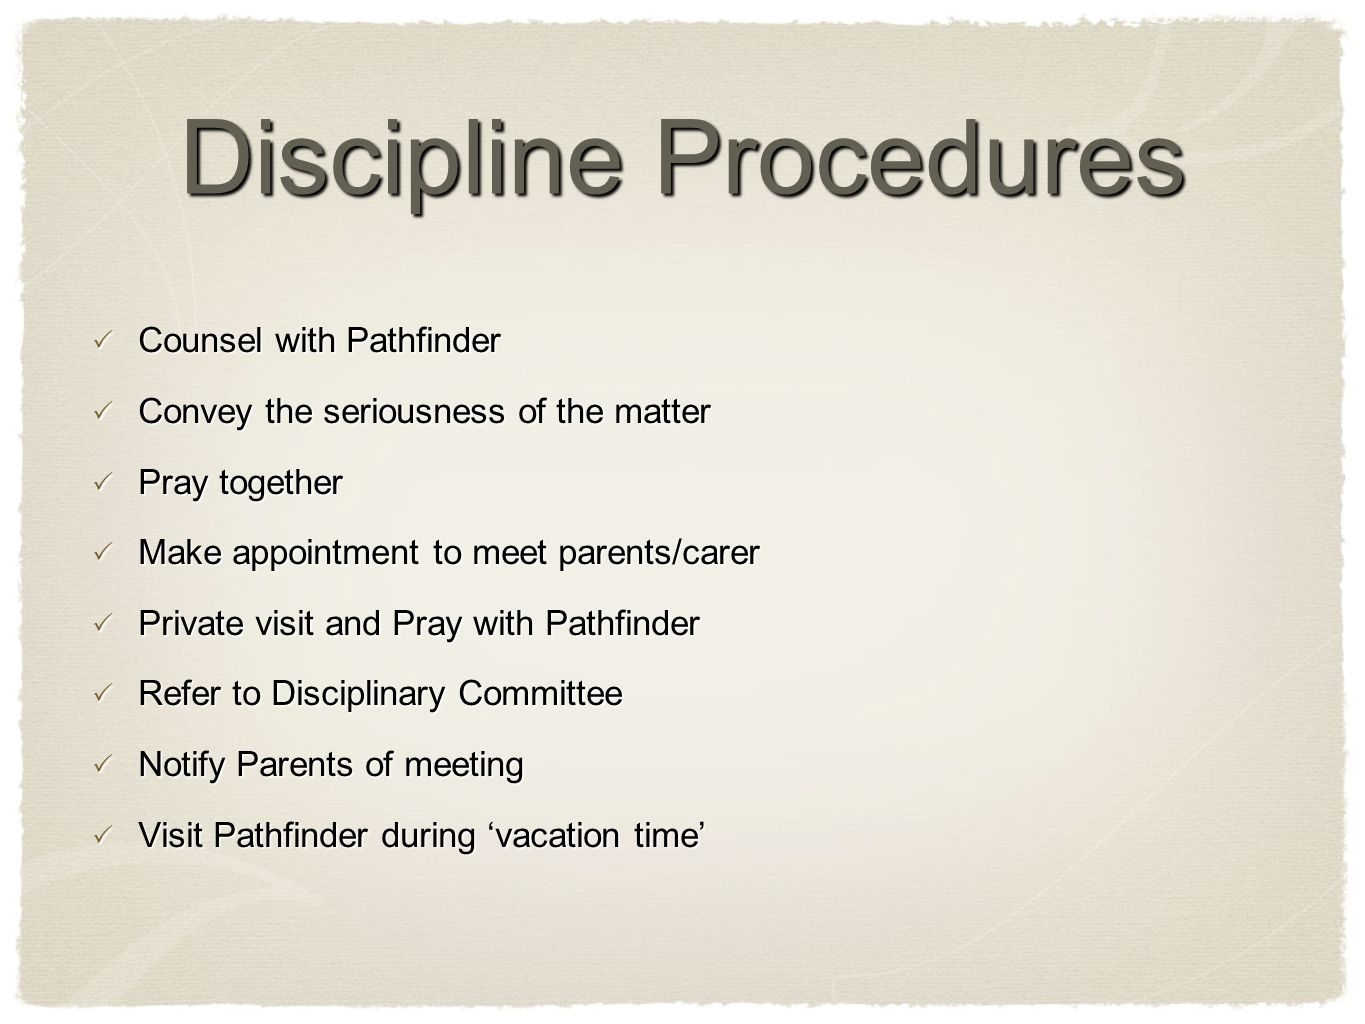 Discipline Procedures  Counsel with Pathfinder  Convey the seriousness of the matter  Pray together  Make appointment to meet parents/carer  Priv